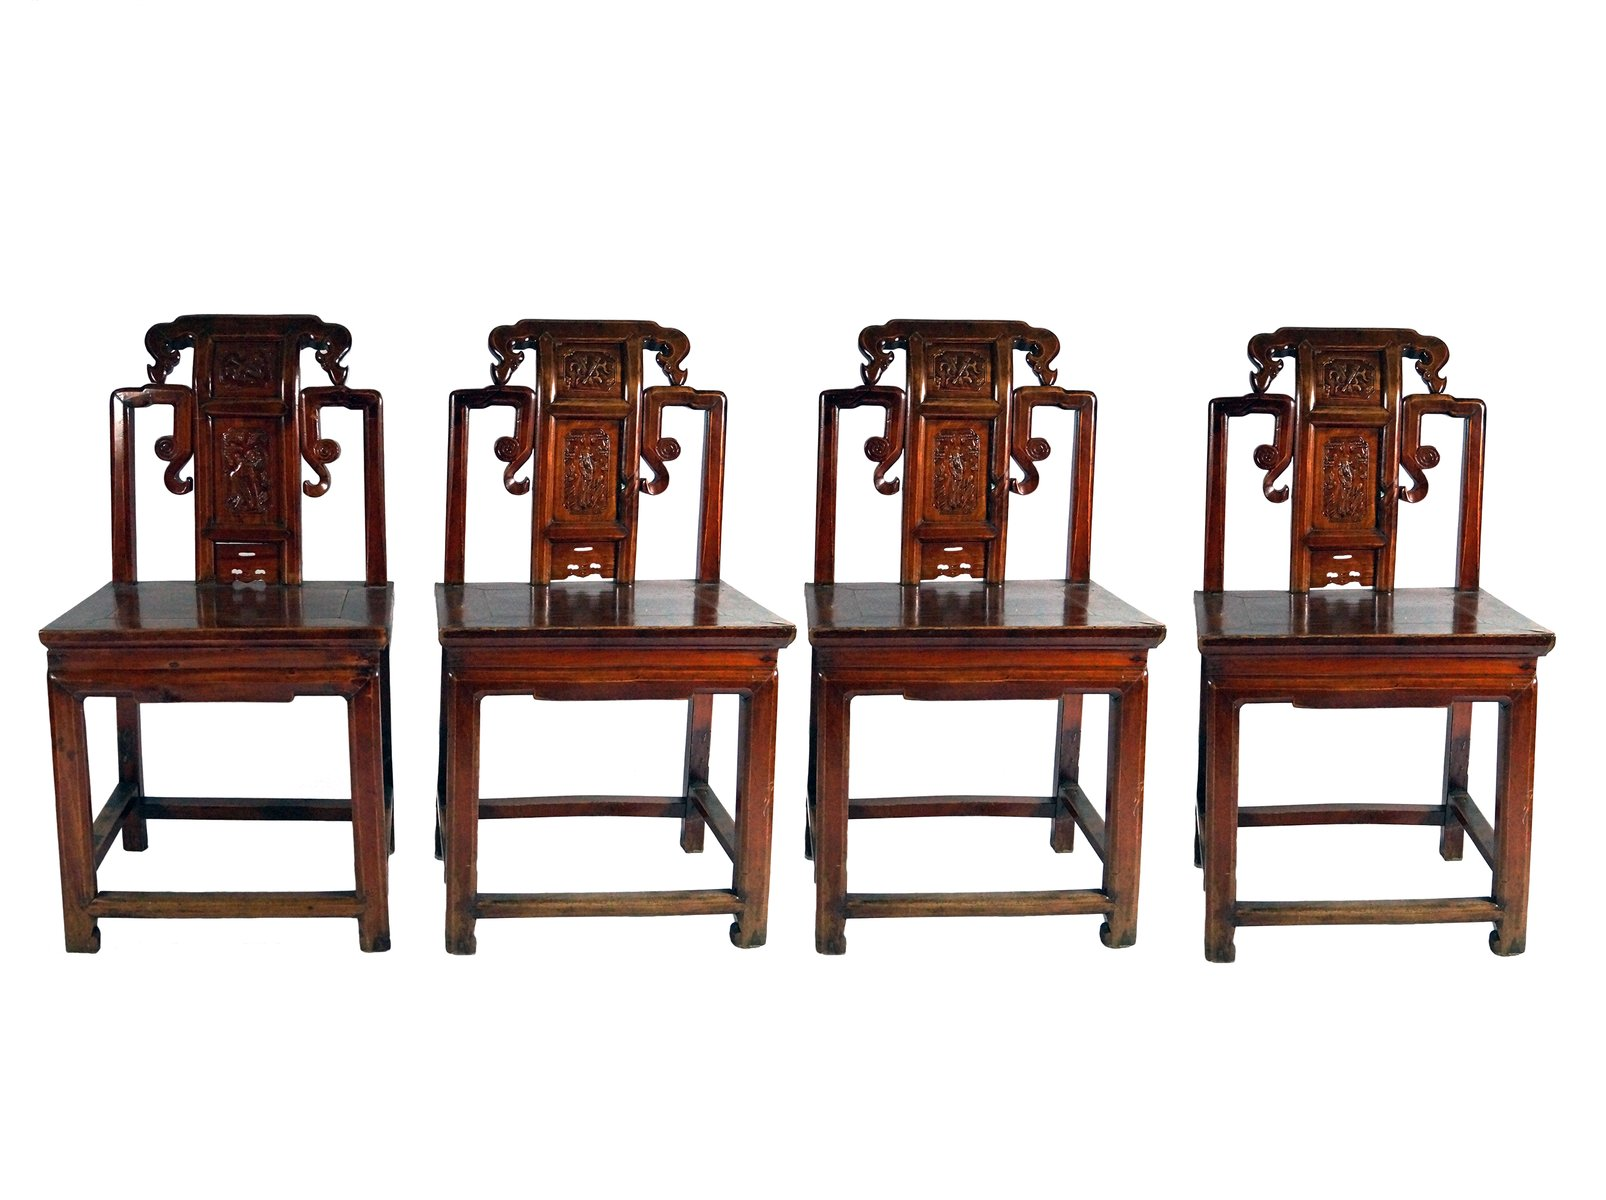 Antique Red Chinese Carved Wood Chairs 1860s Set of 4 for sale